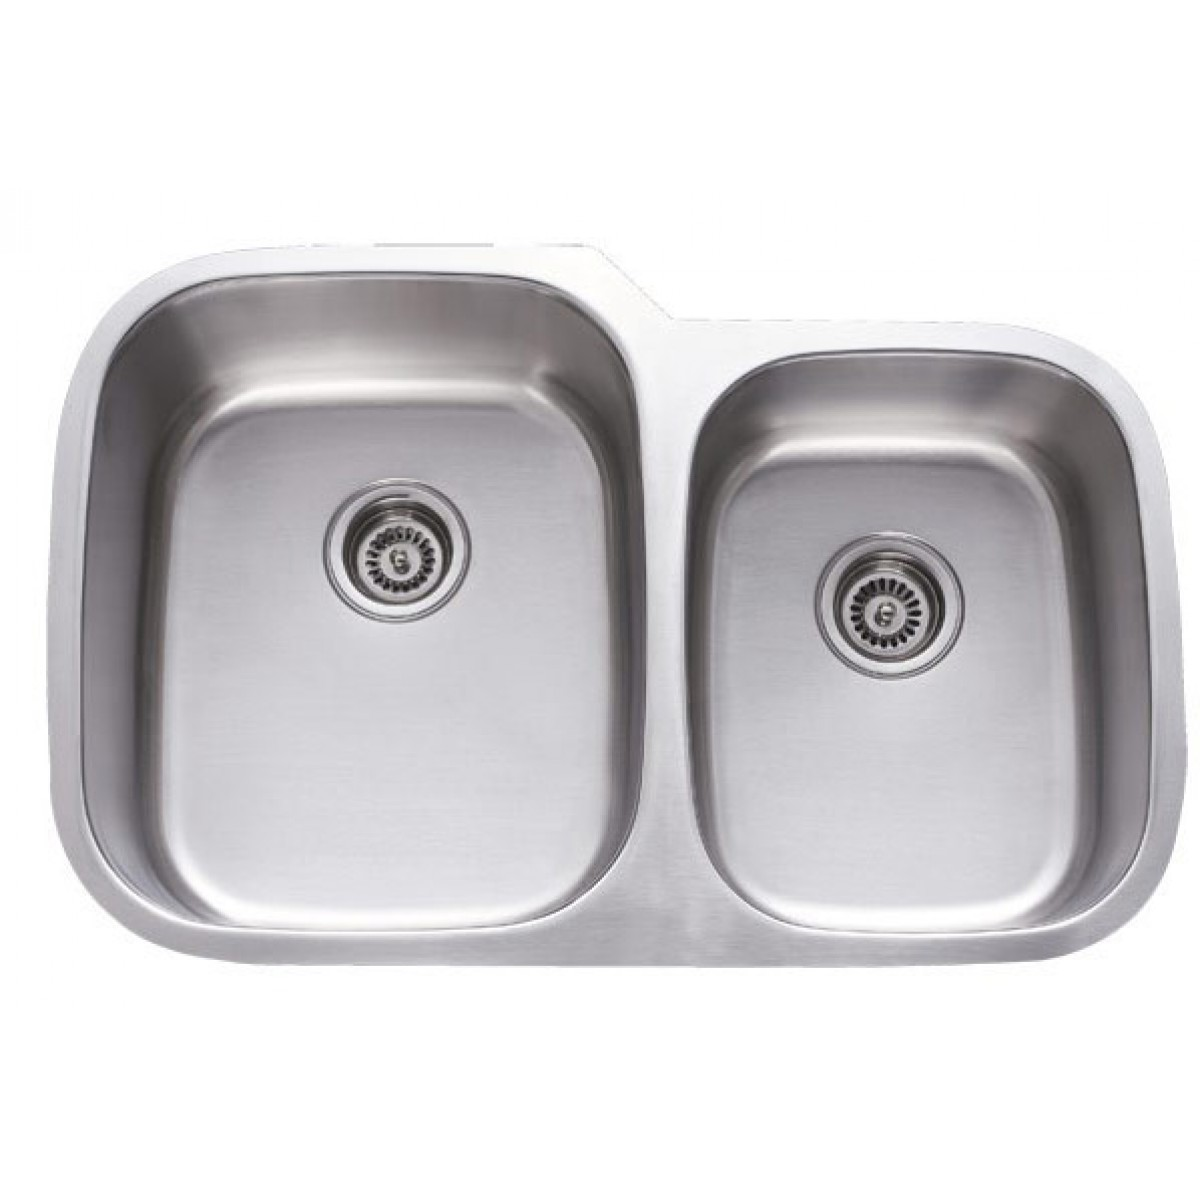 Undermount Stainless Steel Kitchen Sink Reviews